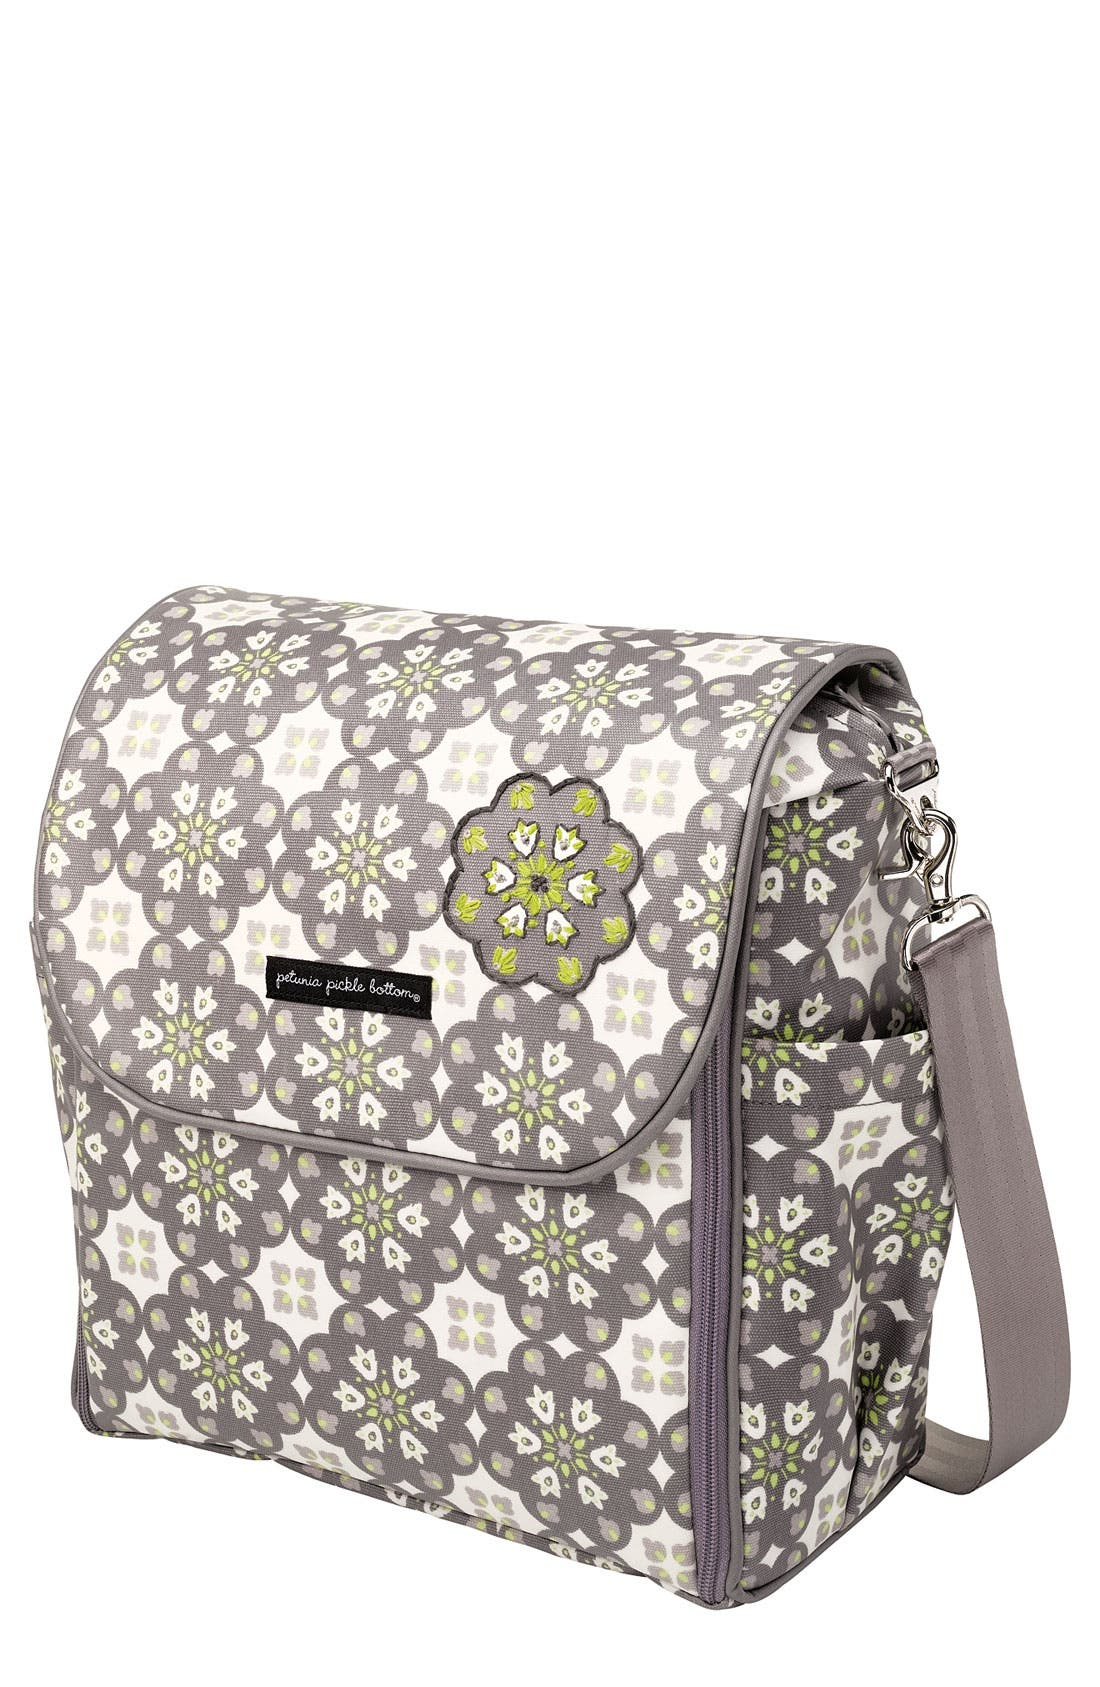 Alternate Image 1 Selected - Petunia Pickle Bottom 'Brocade' Diaper Bag